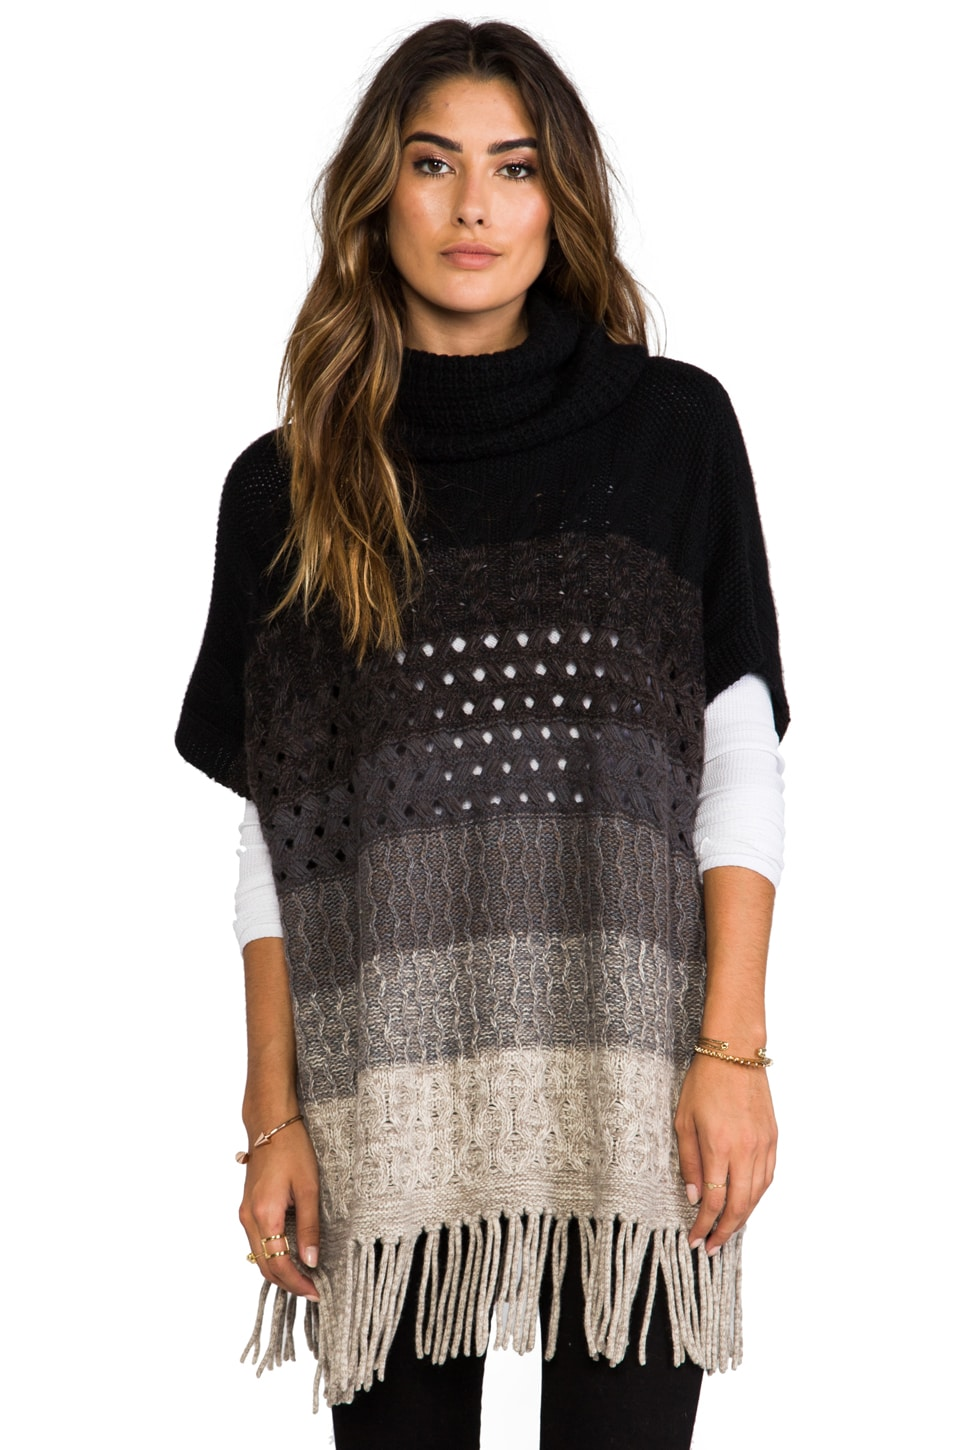 Autumn Cashmere Ombre Poncho in Neutral Combo